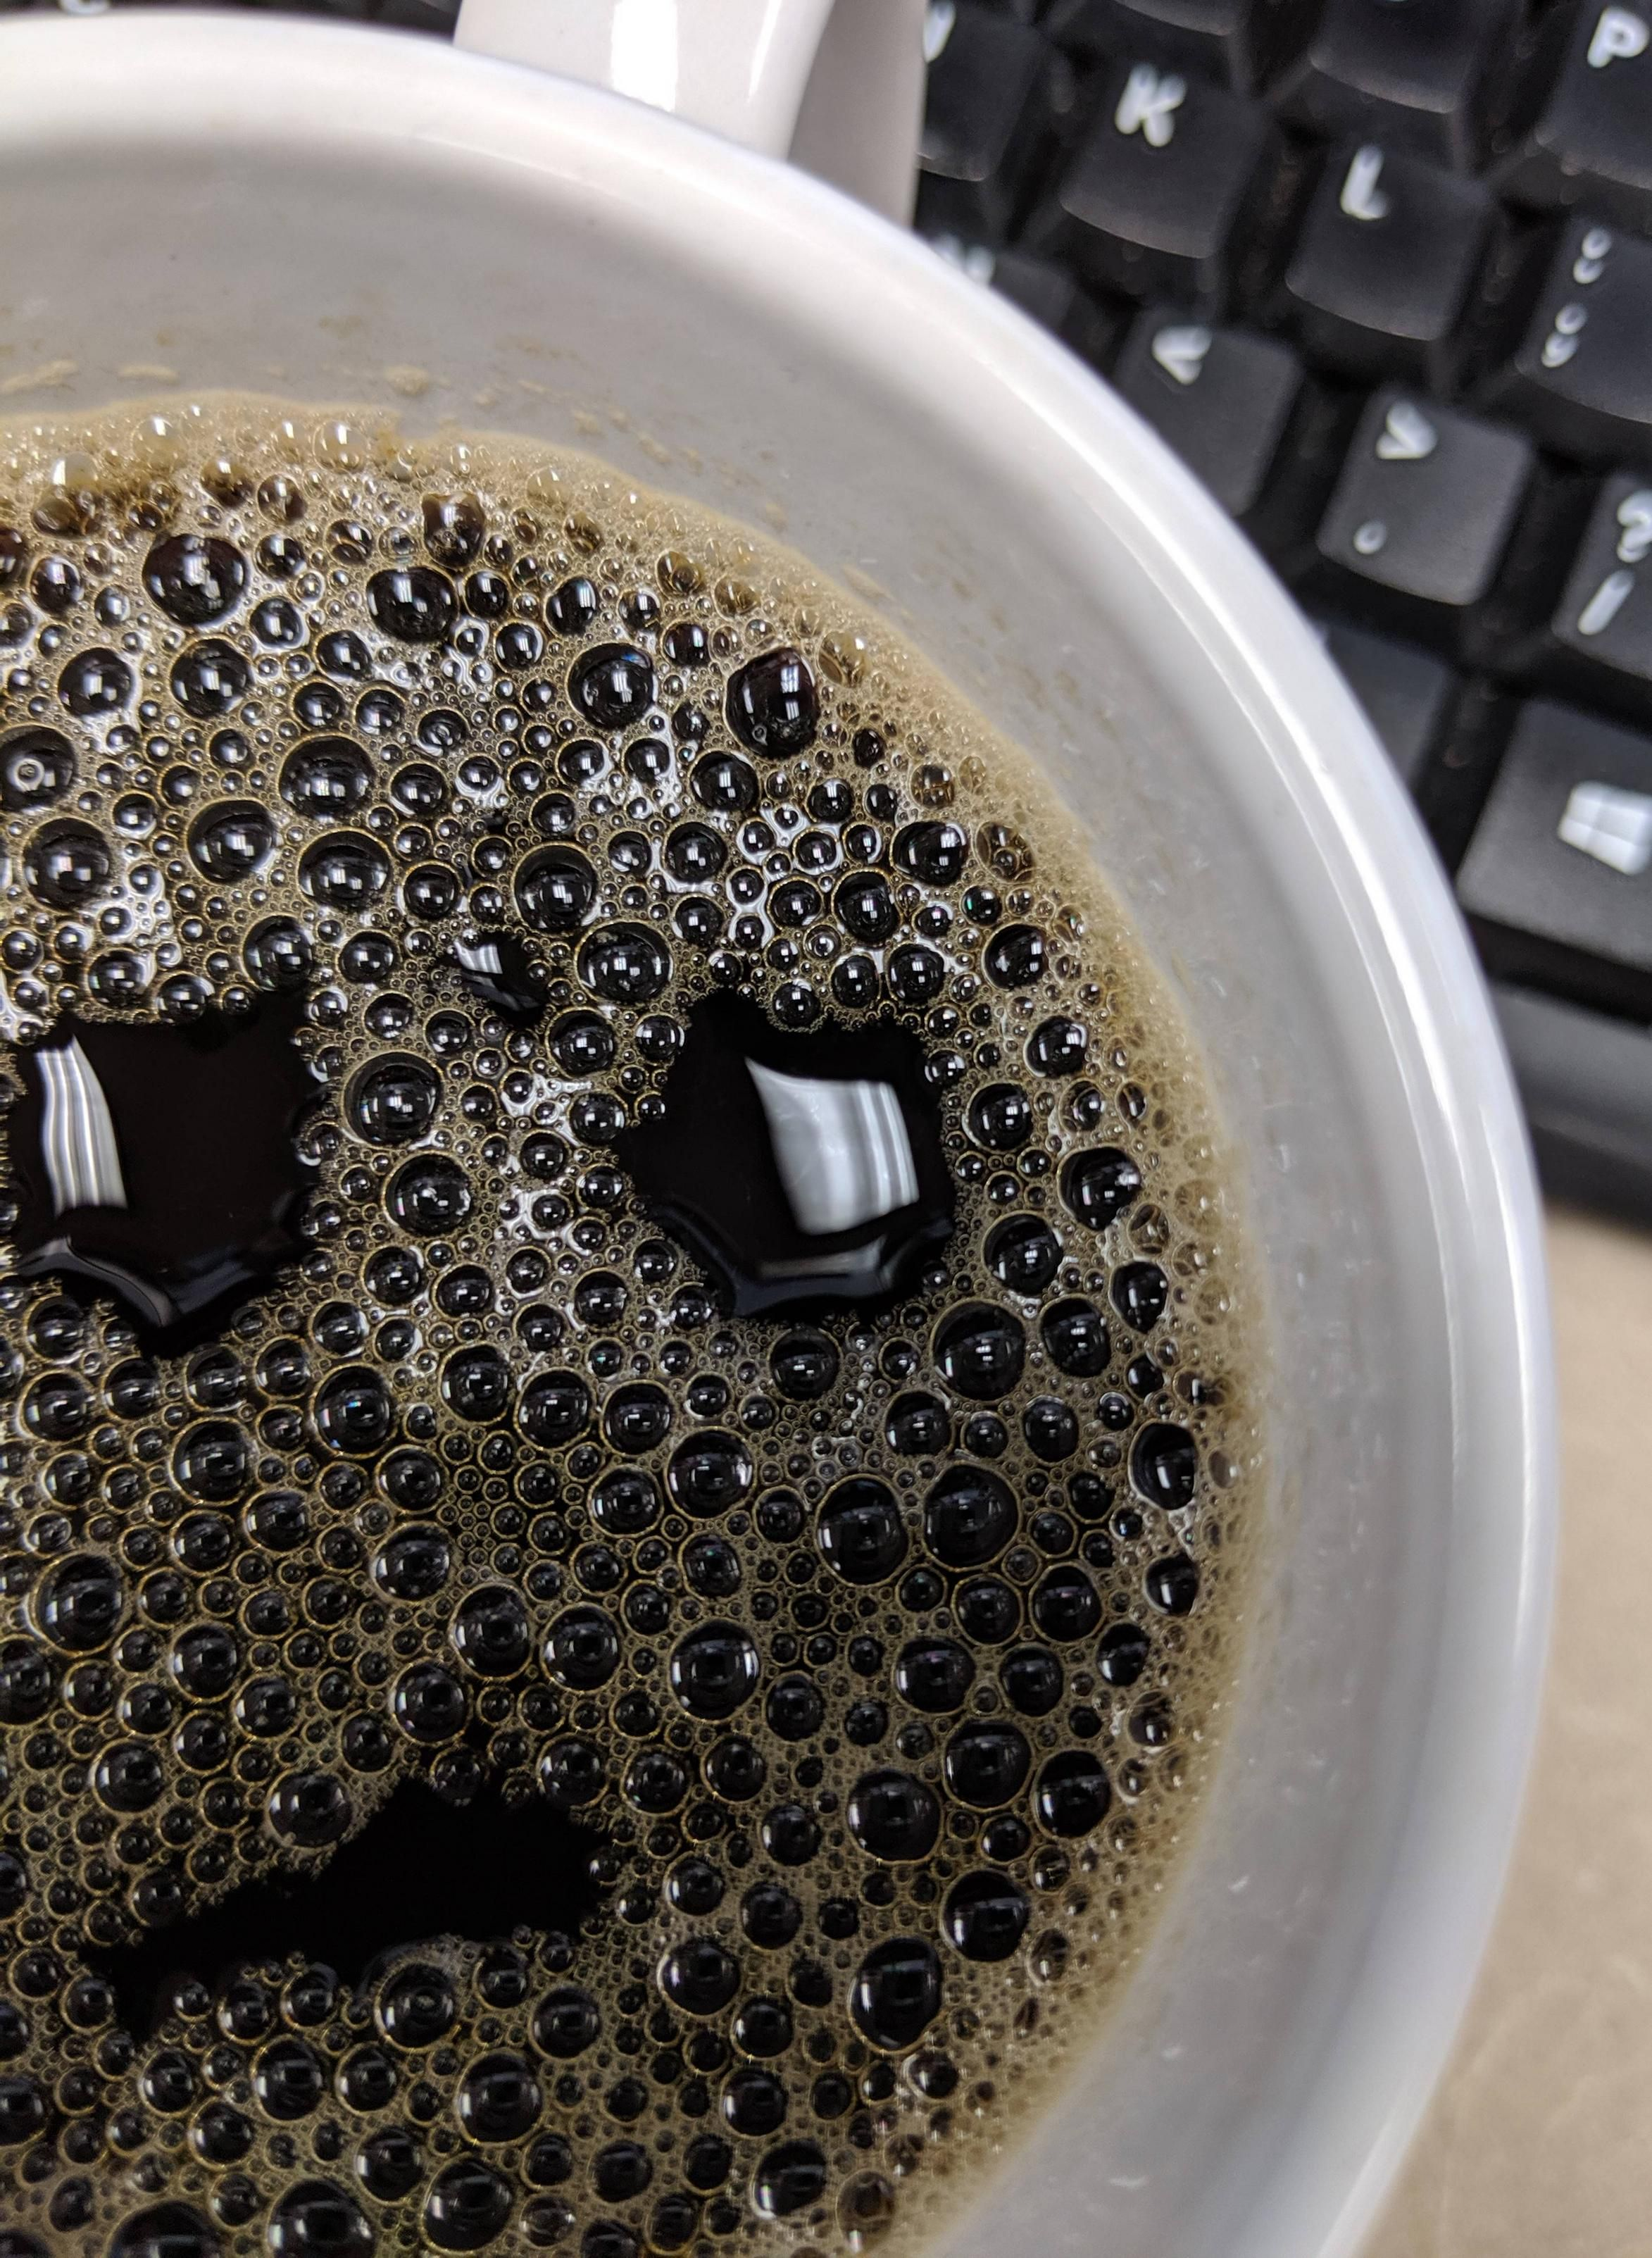 My coffee looks like he just forgot about a meeting